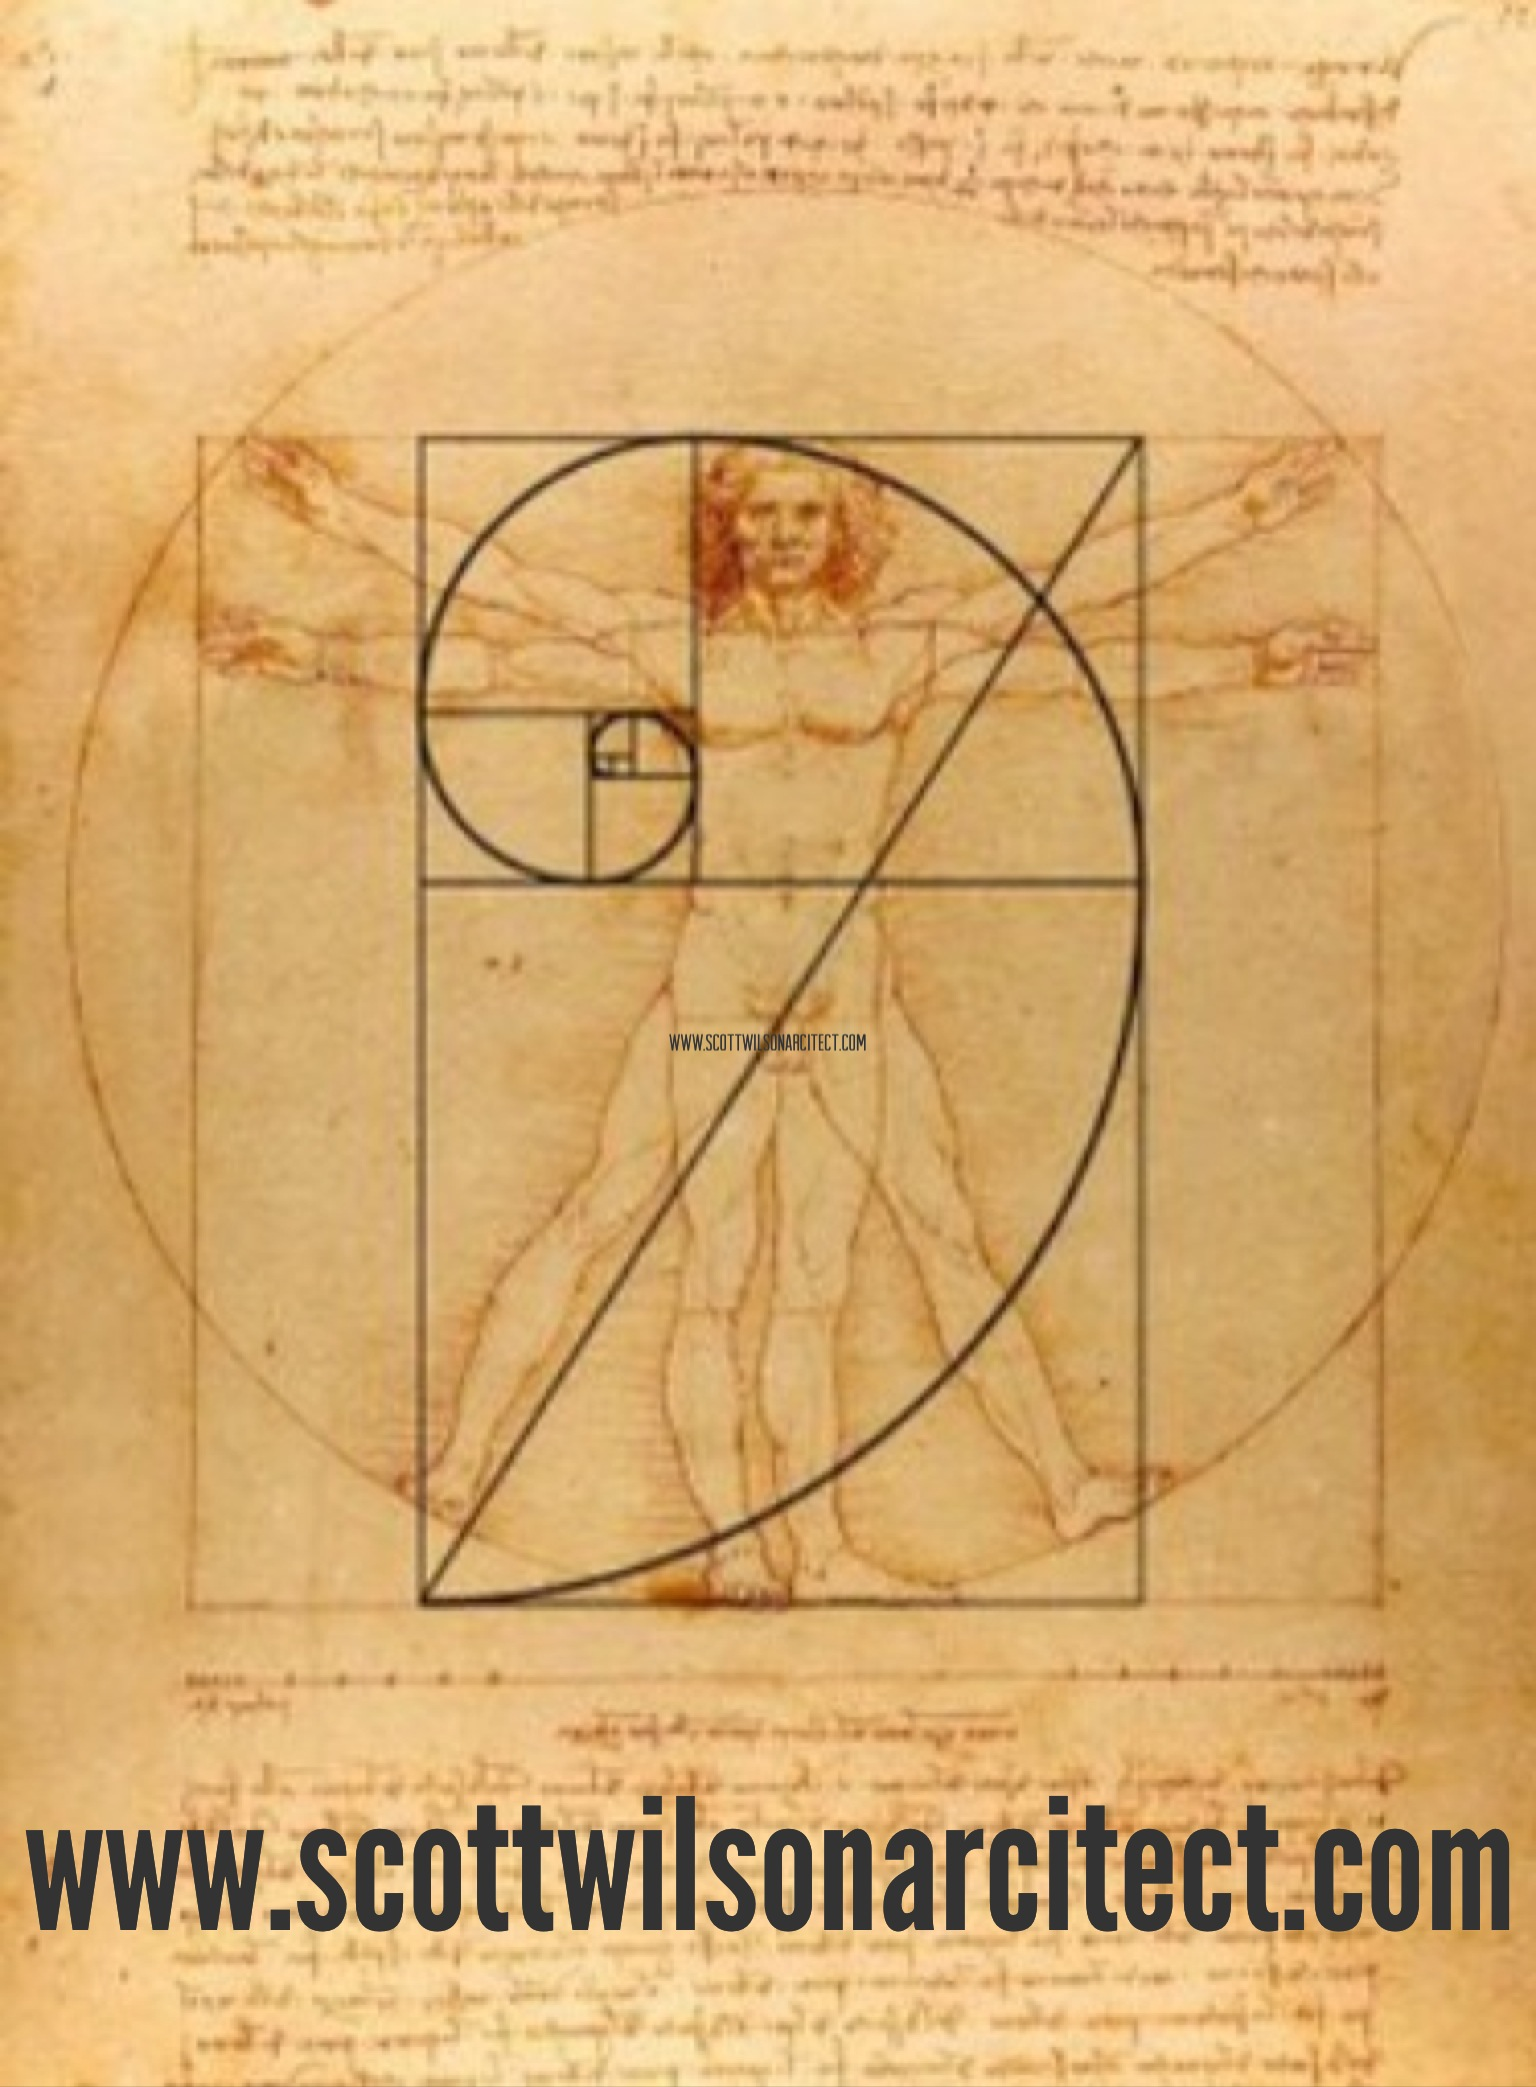 +What is the Golden Ratio?